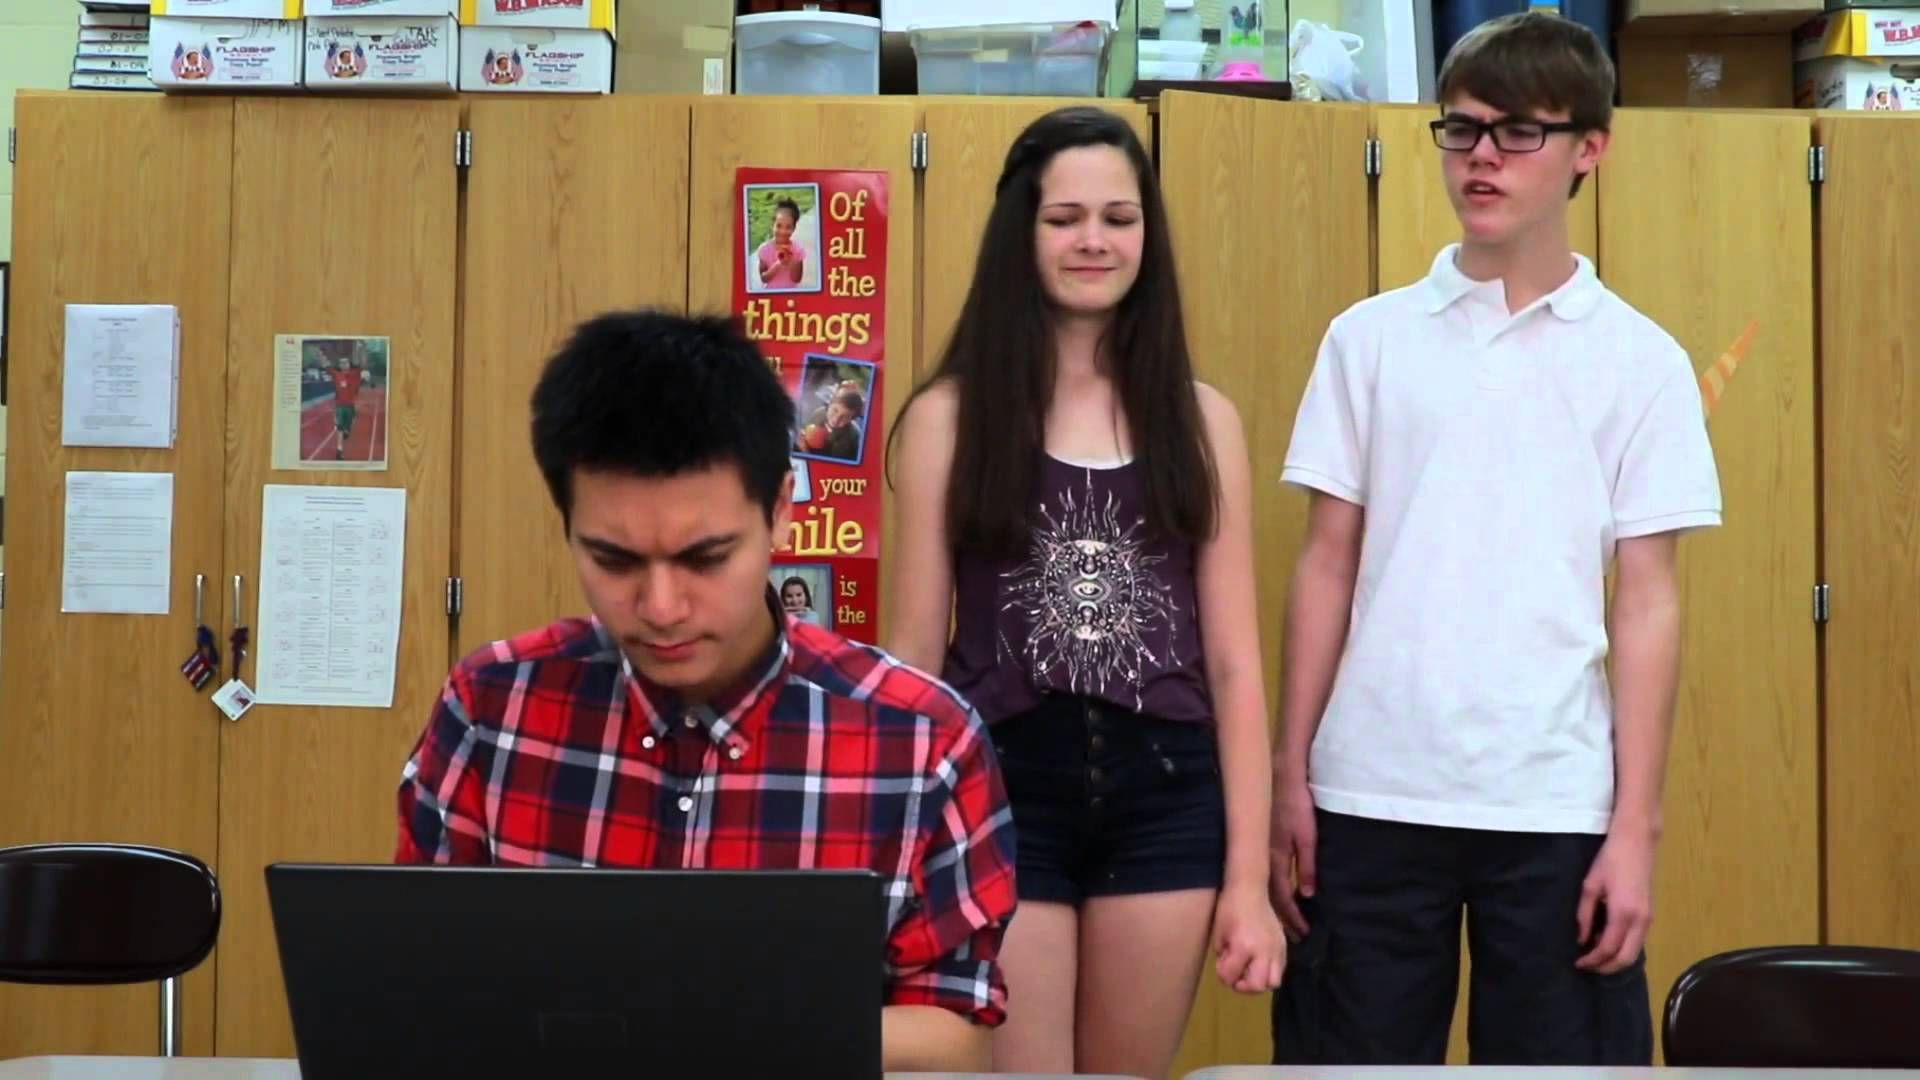 Social Skills Video Listening With Your Body